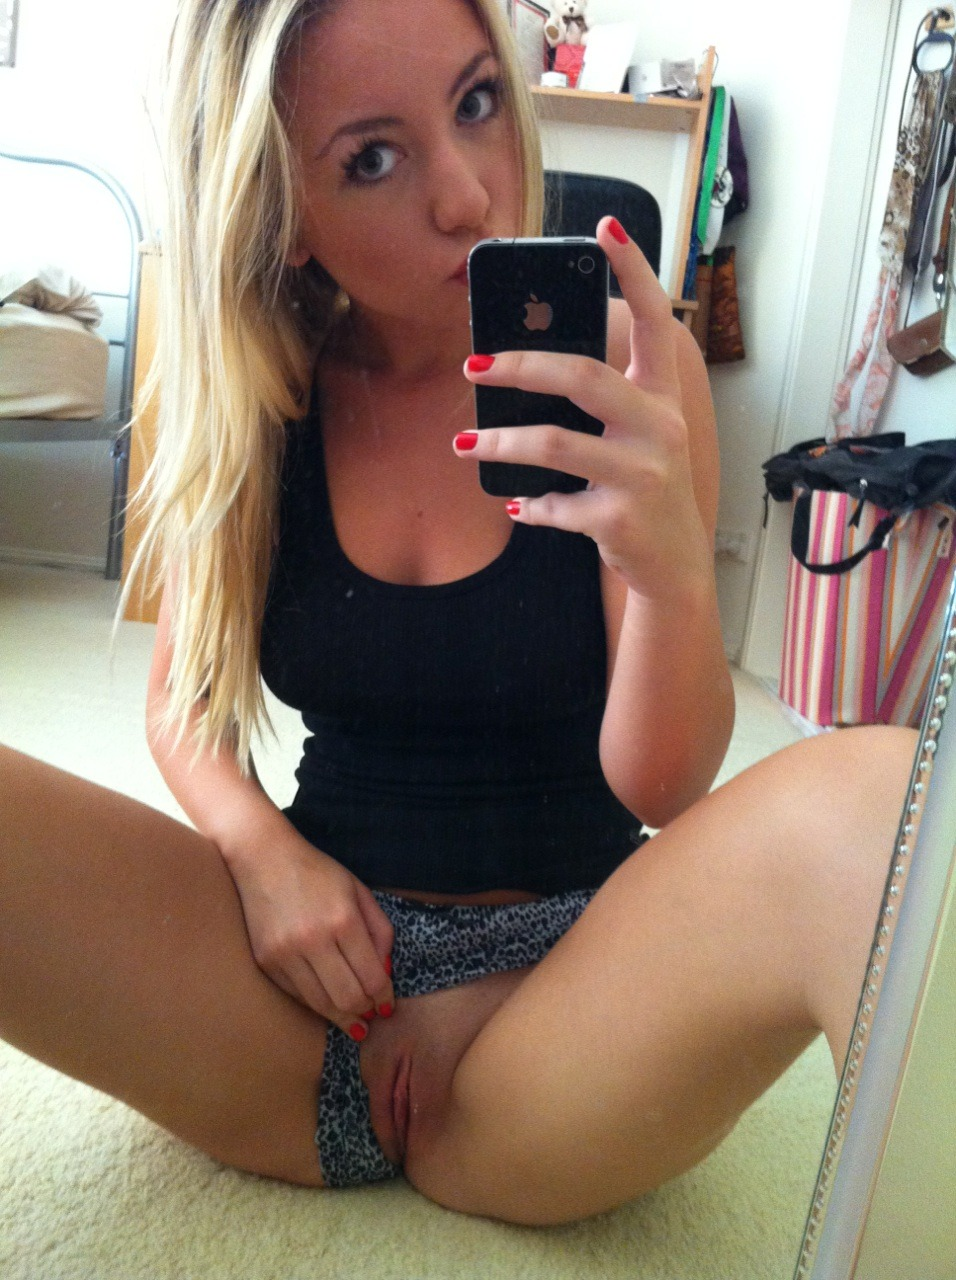 Real Girl Love Nude Selfie With New Iphone 7 47 - 61 Real Girl Love Nude Selfie With New Iphone Part 7